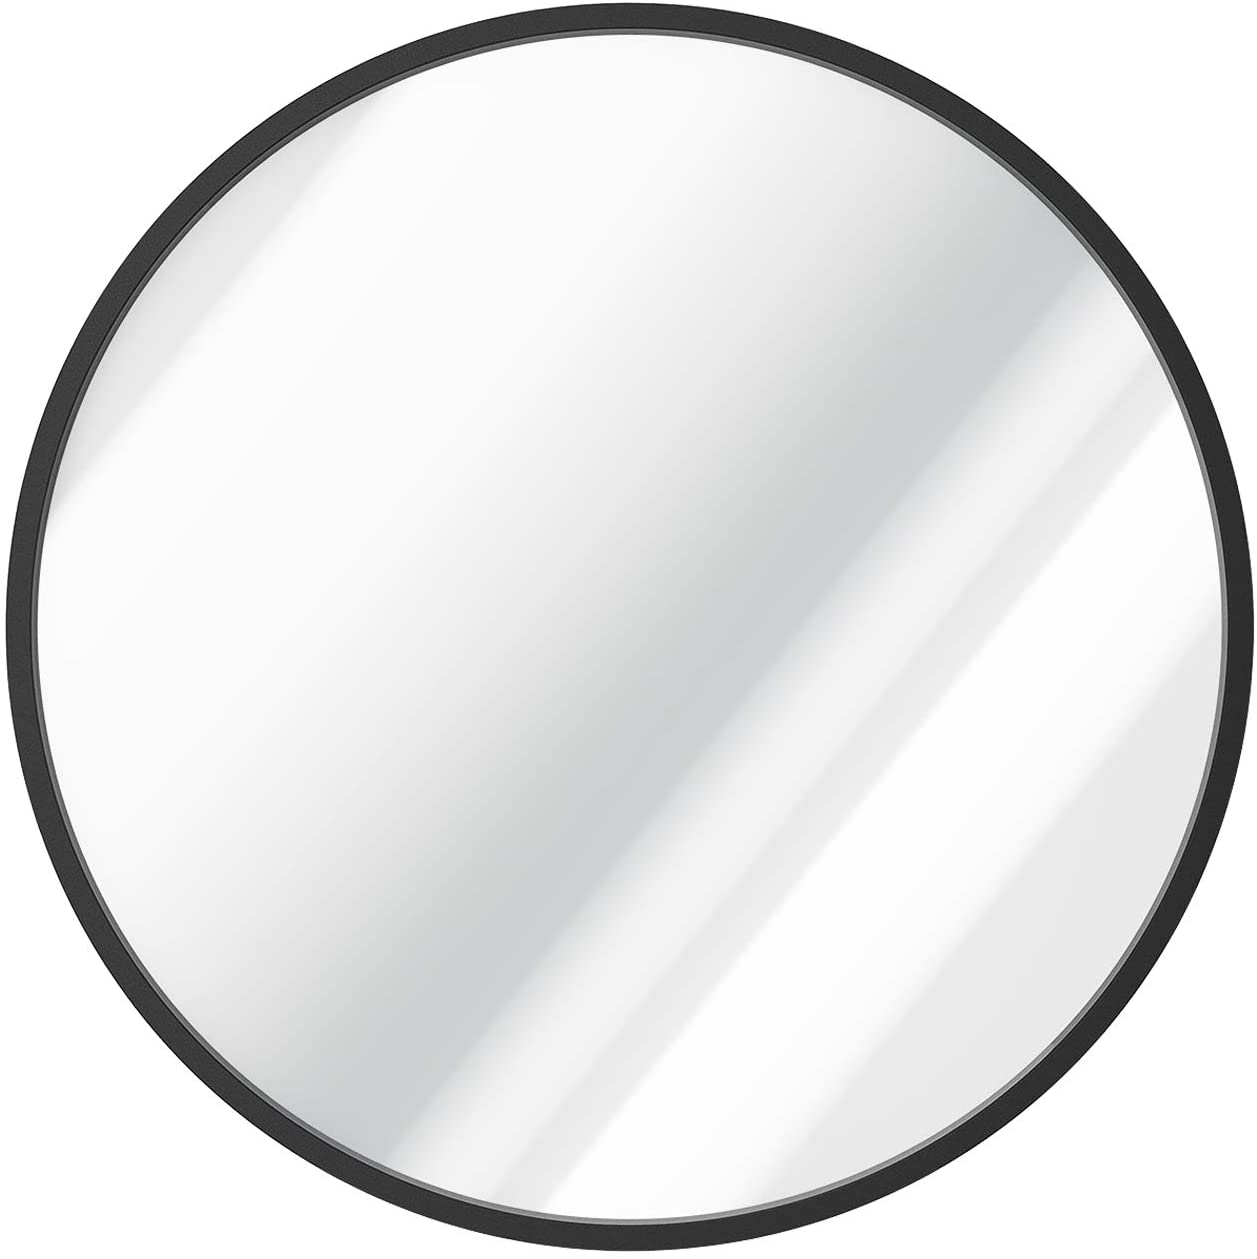 SHINESTAR 24 Inch Round Mirror for Wall Decor, Matte Black Metal Frame, Large Size Circle Vanity Mirror for Bathroom, Bedroom, Living Room, Entryway, Modern Style